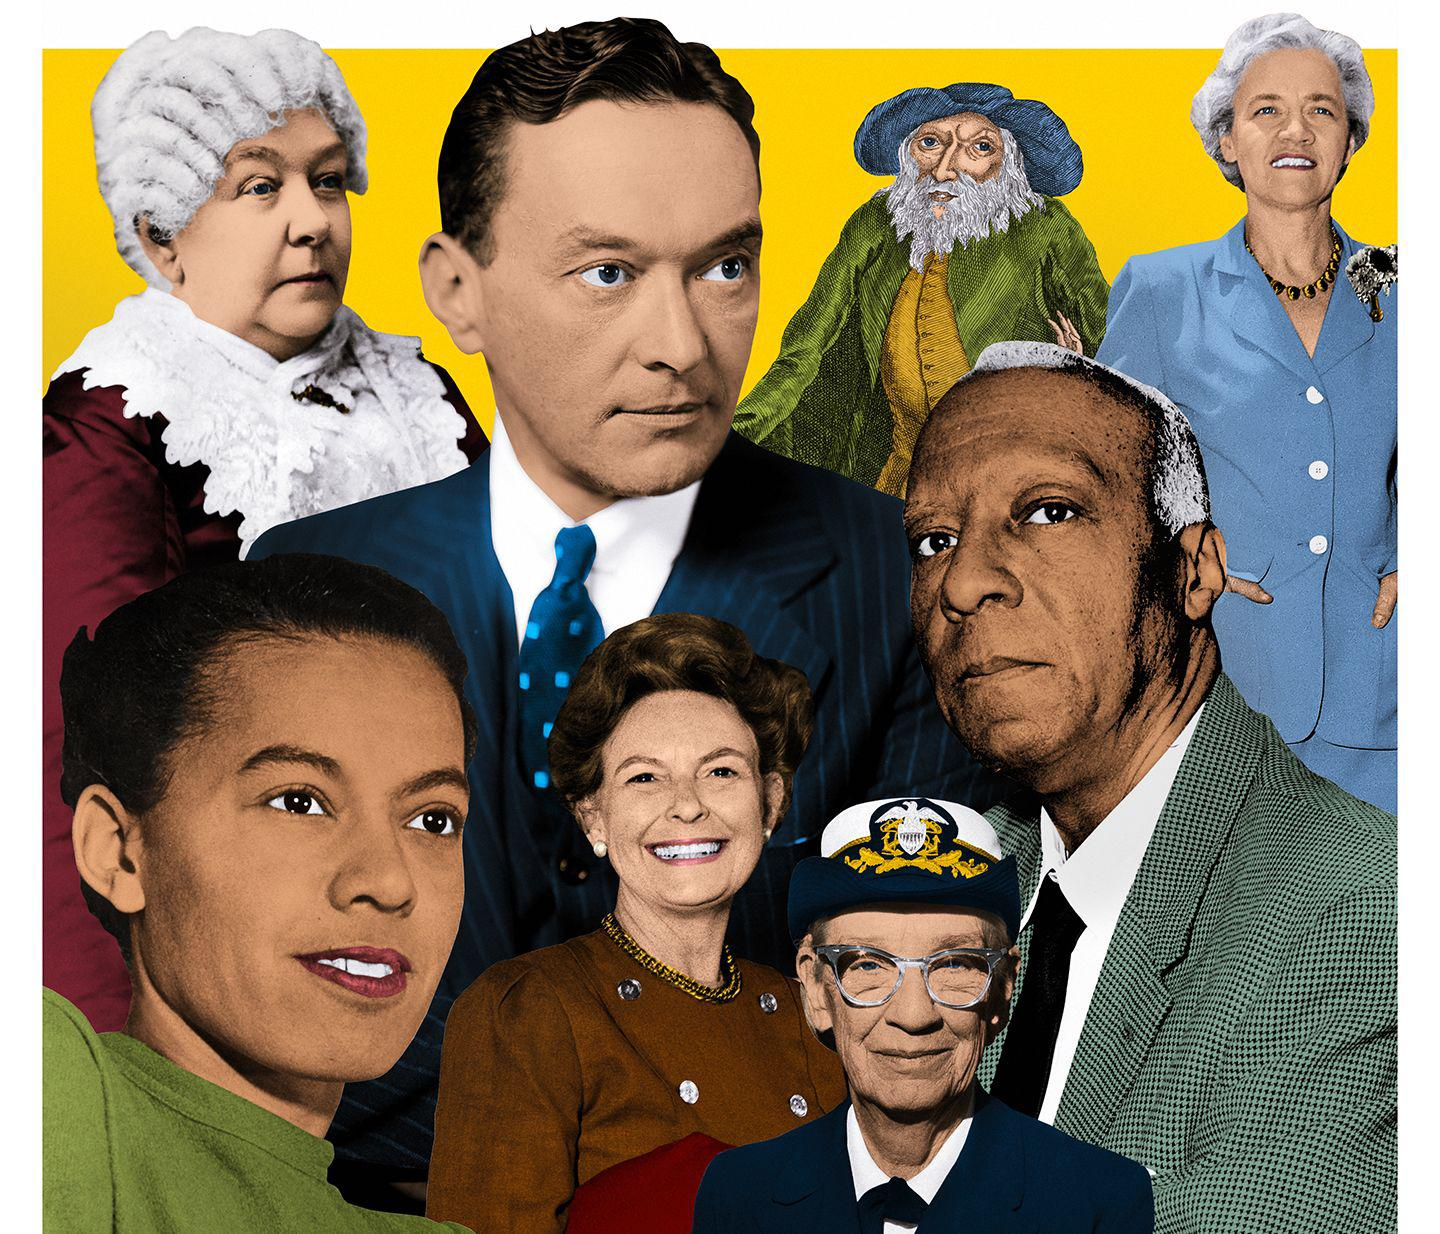 Historian Jill Lepore shines a light on the leaders underserved or overlooked by American history textbooks. Top row, from left: Elizabeth Cady Stanton, Walter Lippmann, Benjamin Lay, Margaret Chase Smith. Bottom row, from left: Pauli Murray, Phyllis Schlafly, Grace Hopper, A. Philip Randolph.